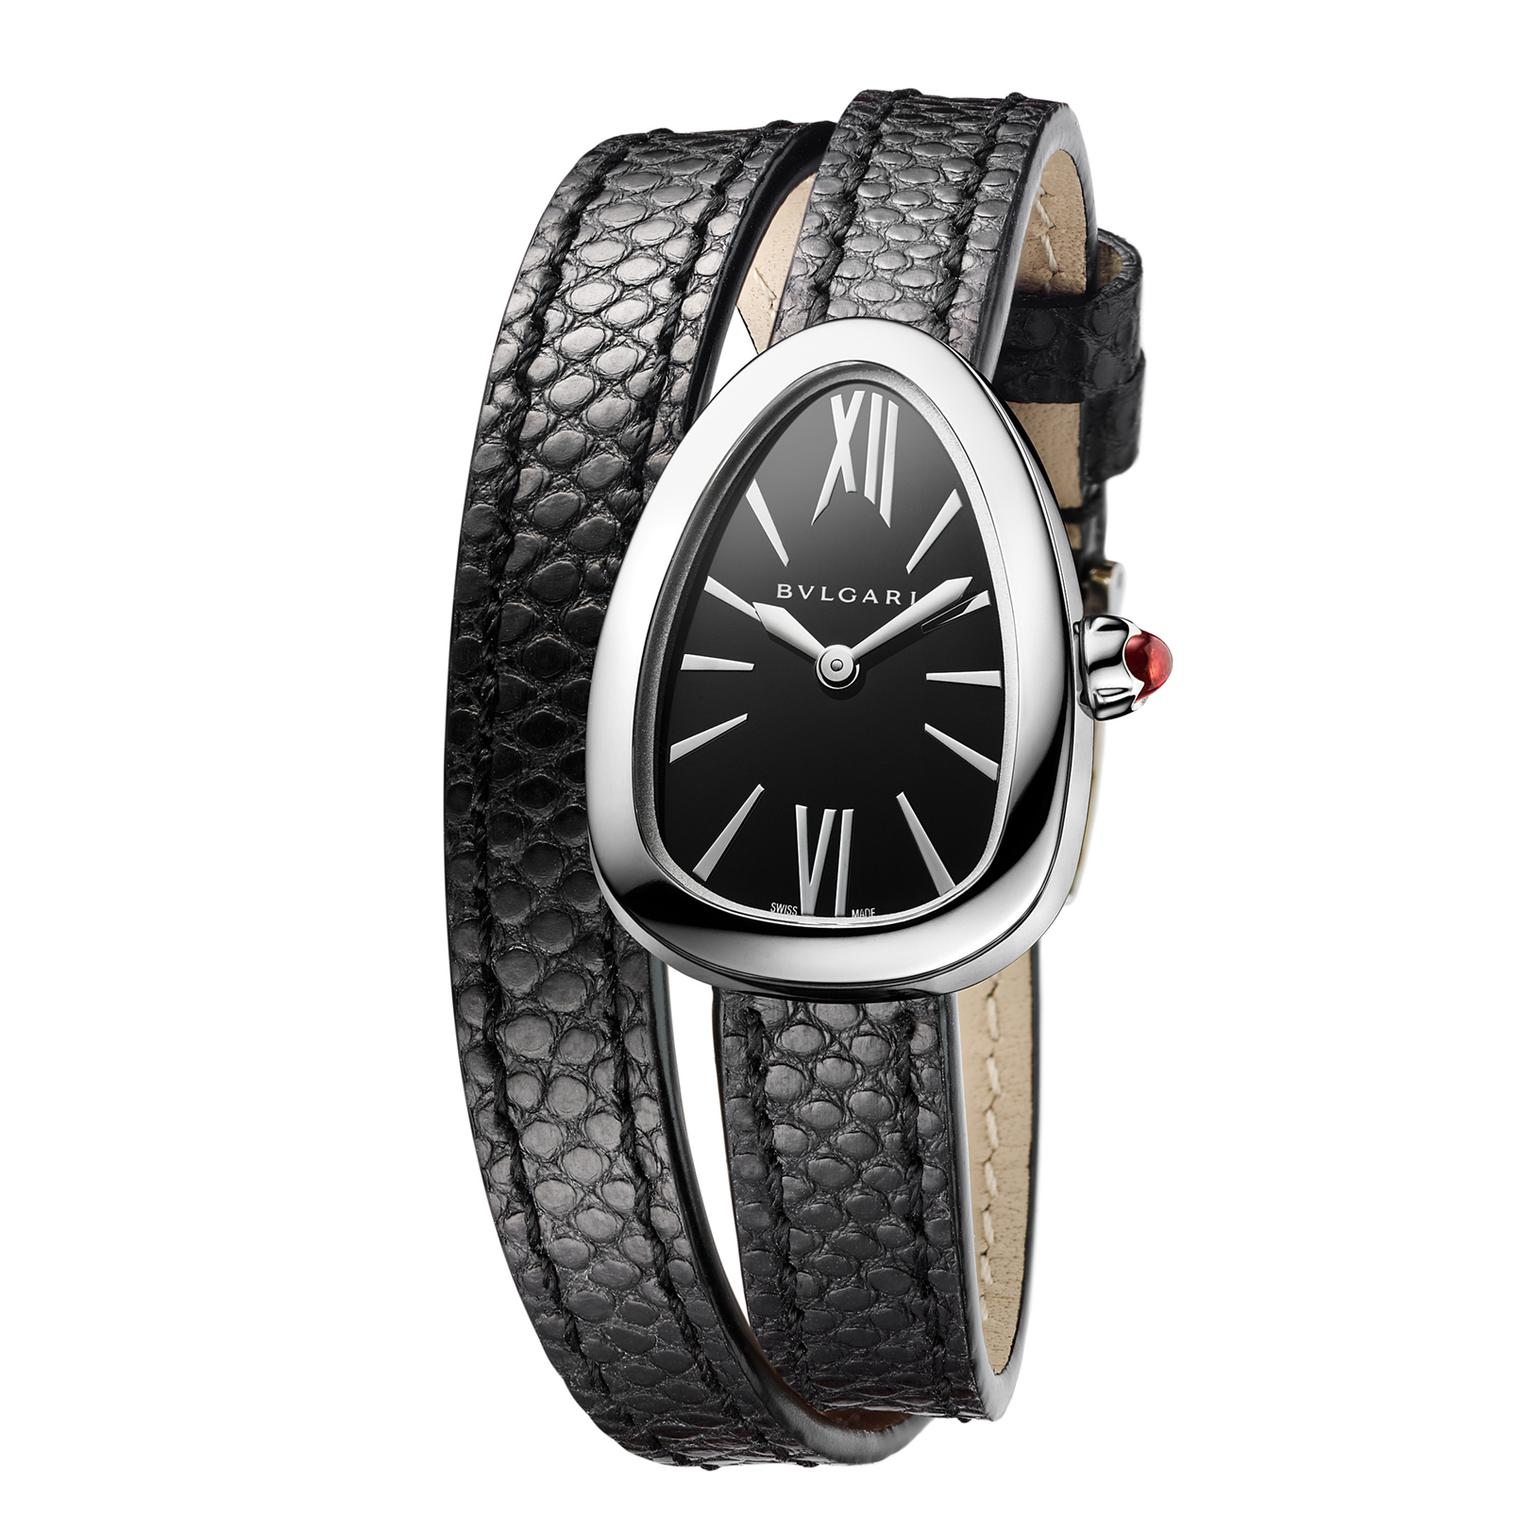 Bulgari Serpenti watch in steel with black dial